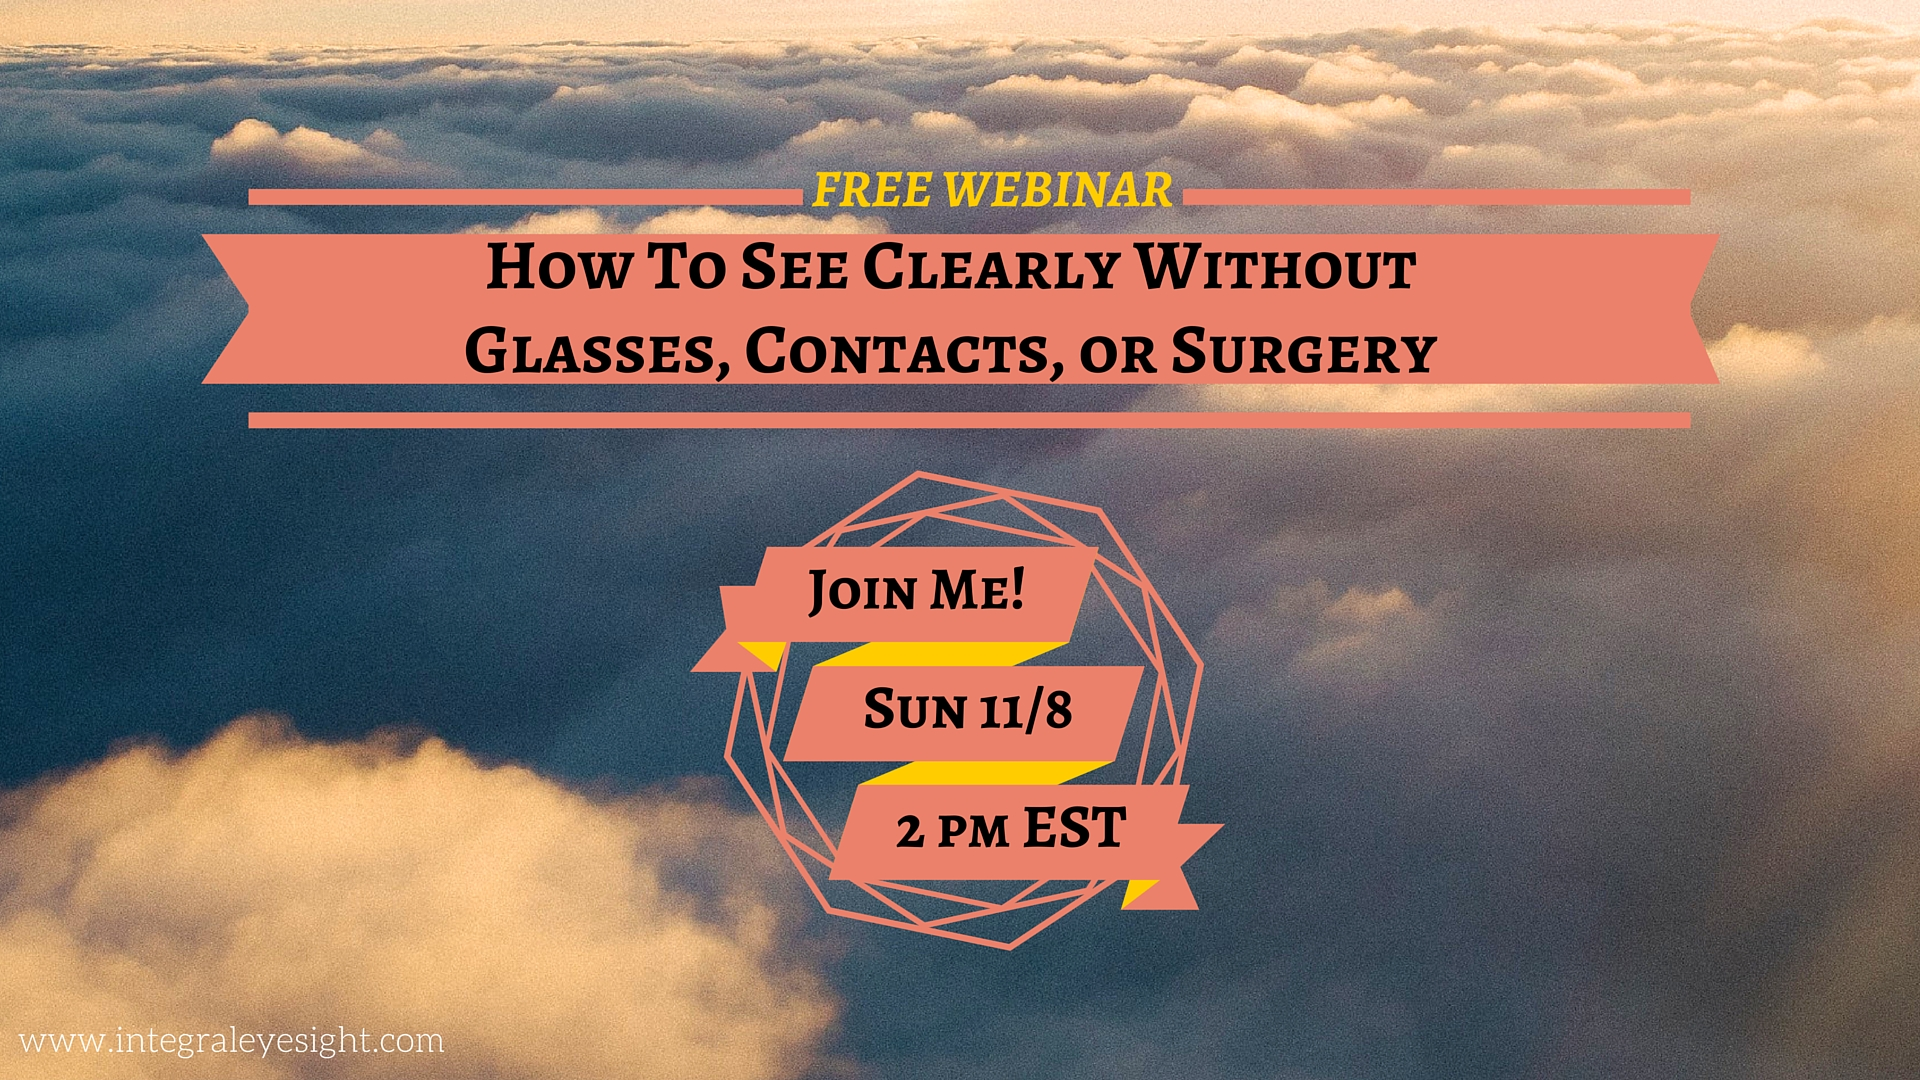 How To See Clearly Without Glasses Contacts Surgery Bates Method Yoga Meditation Asheville AVL Eyesight Eyecare Holistic